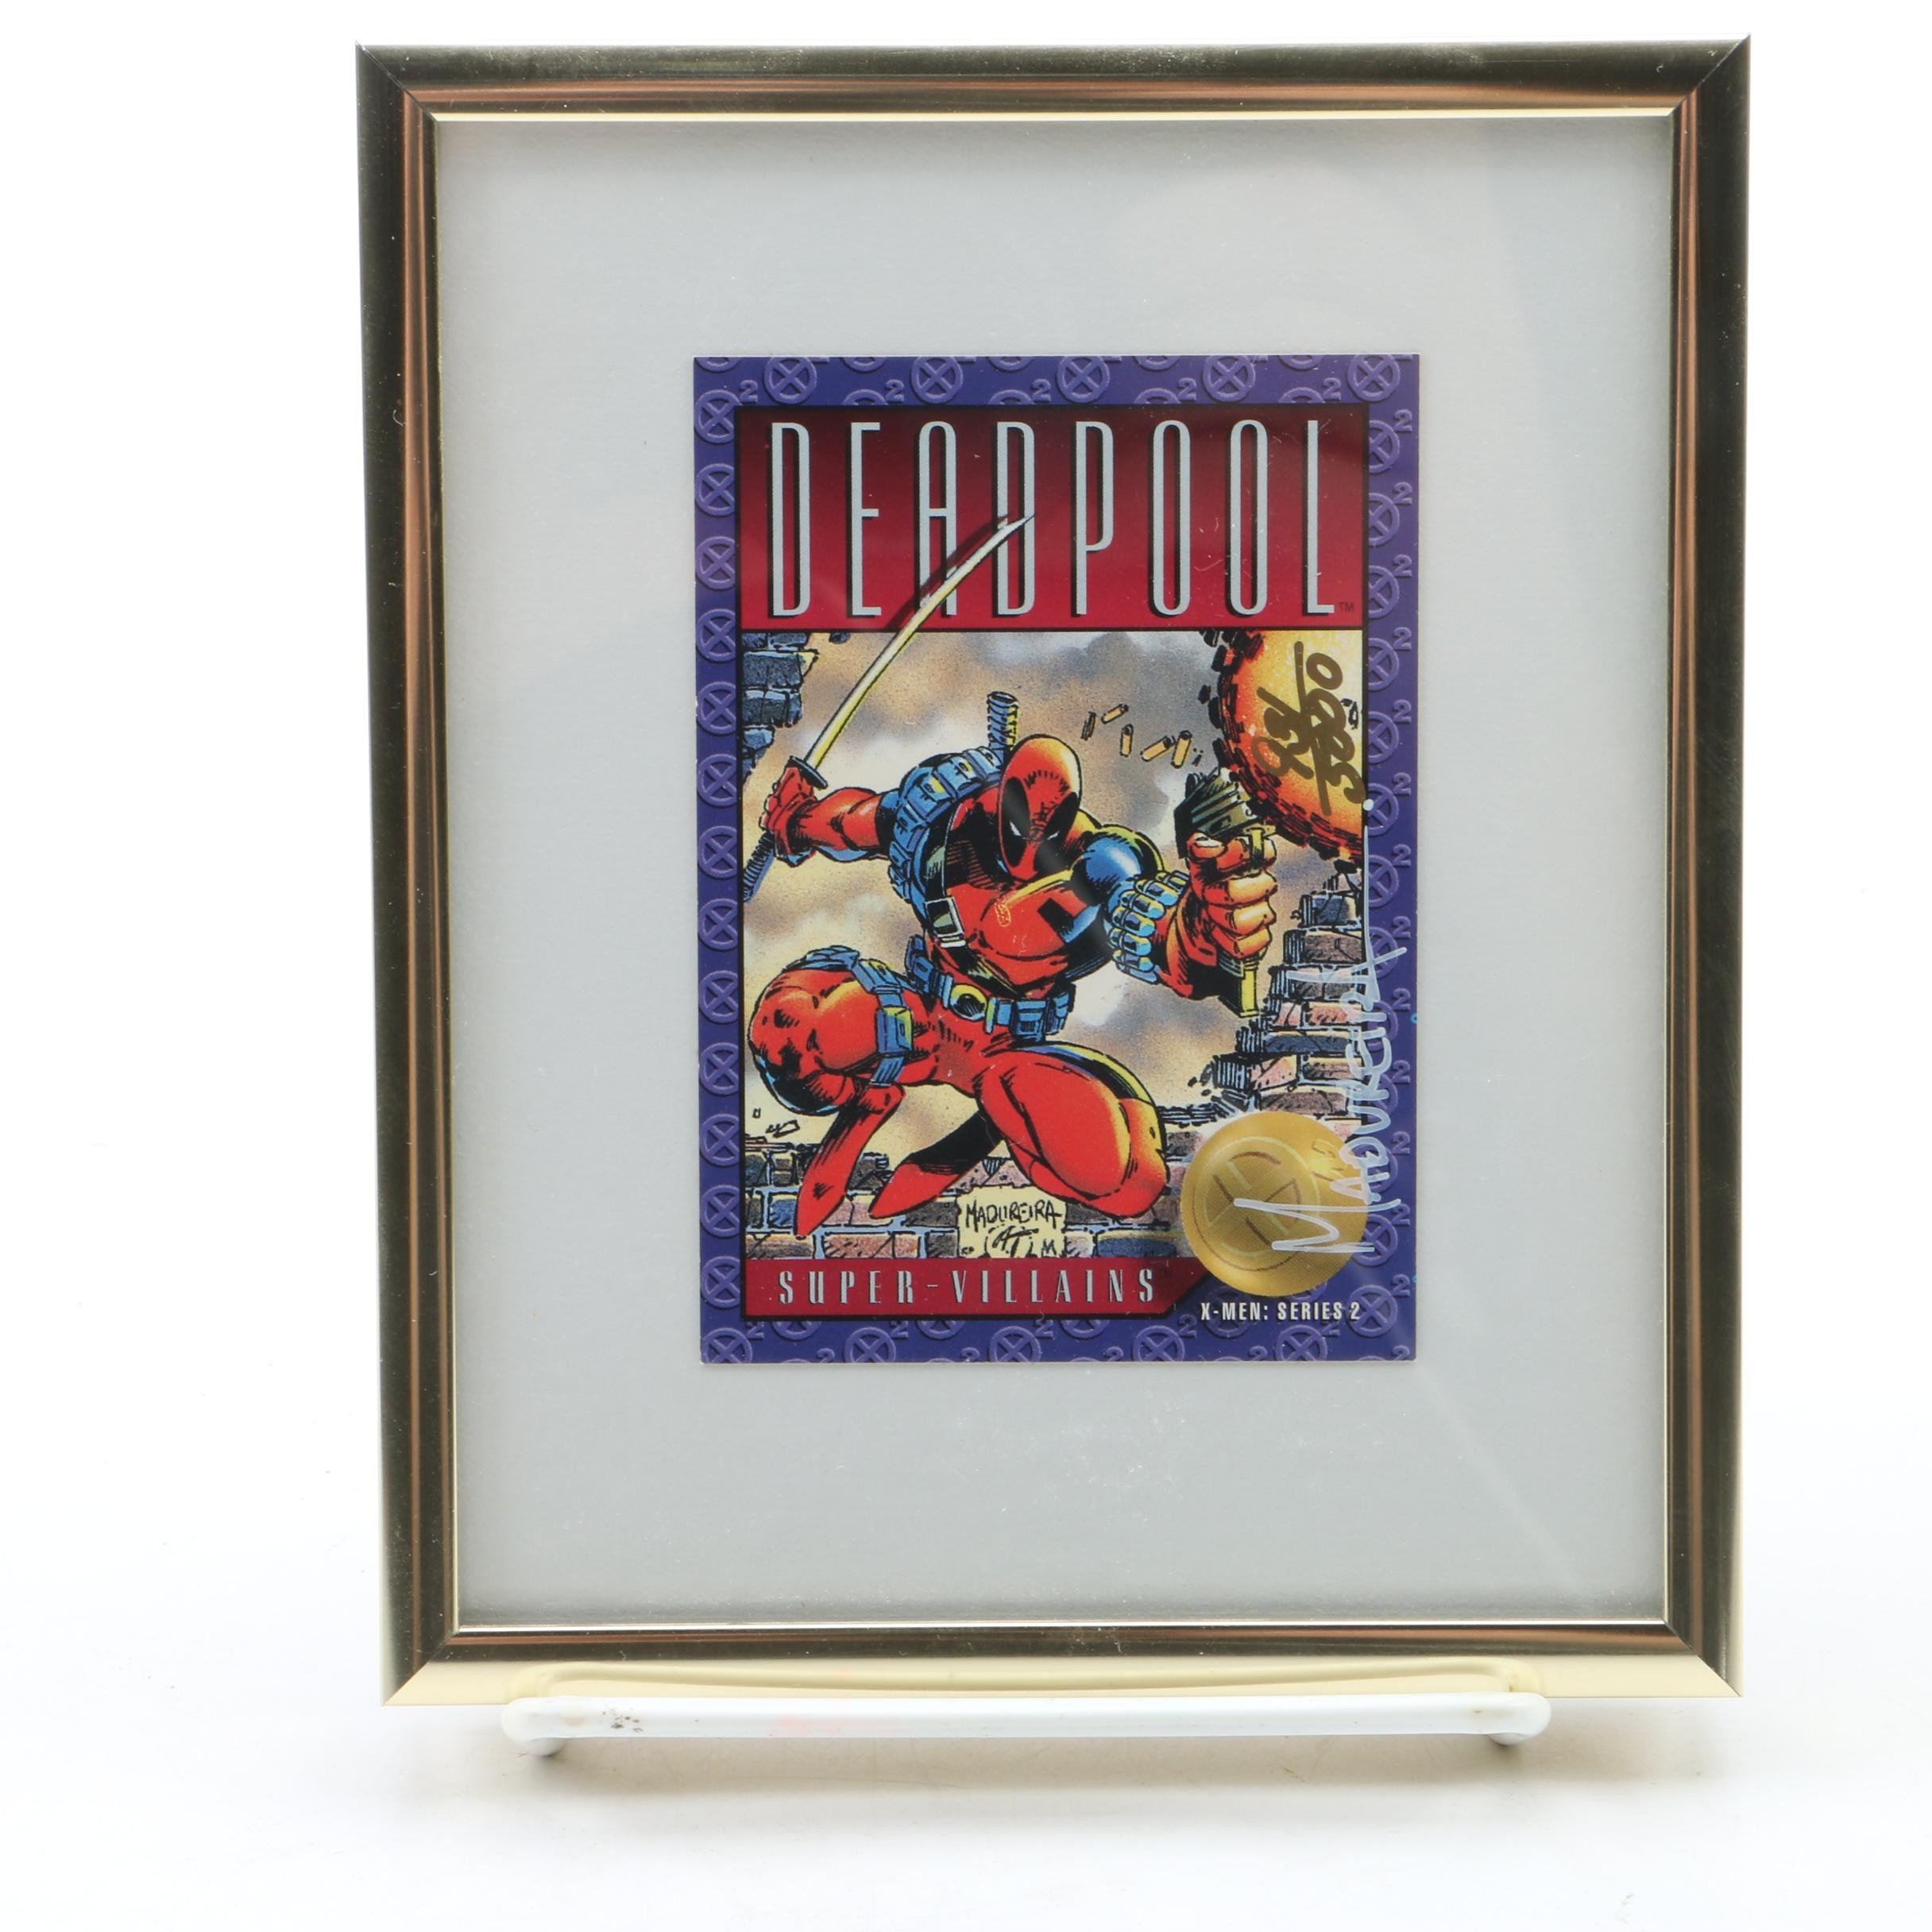 Limited Edition Framed 1993 Deadpool Trading Card Signed by Artist